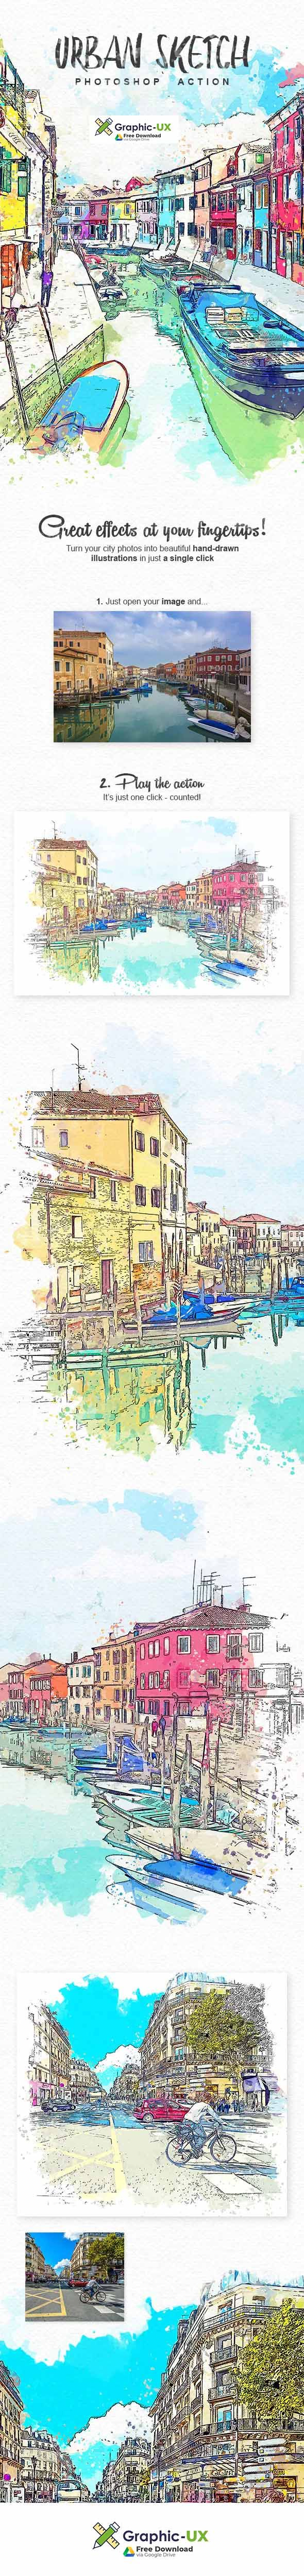 Urban Sketch Photoshop Action Free Download With Images Sketch